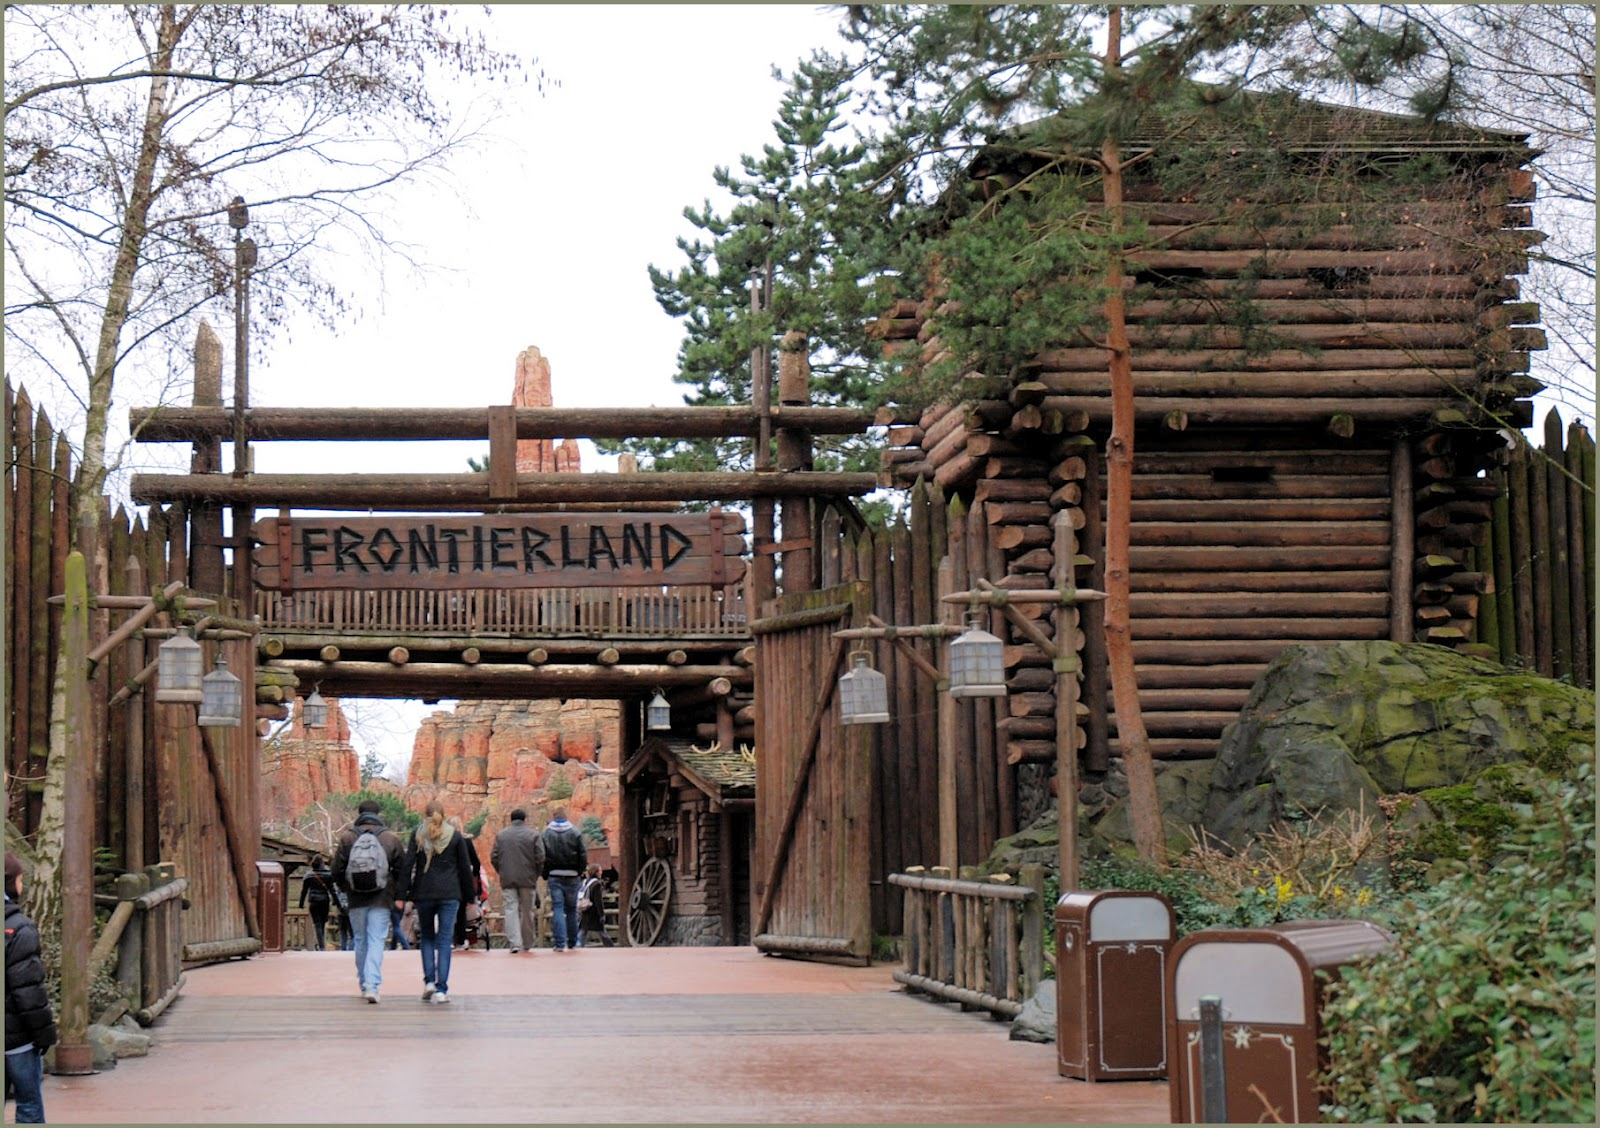 DF'82: The Camp At Frontierland